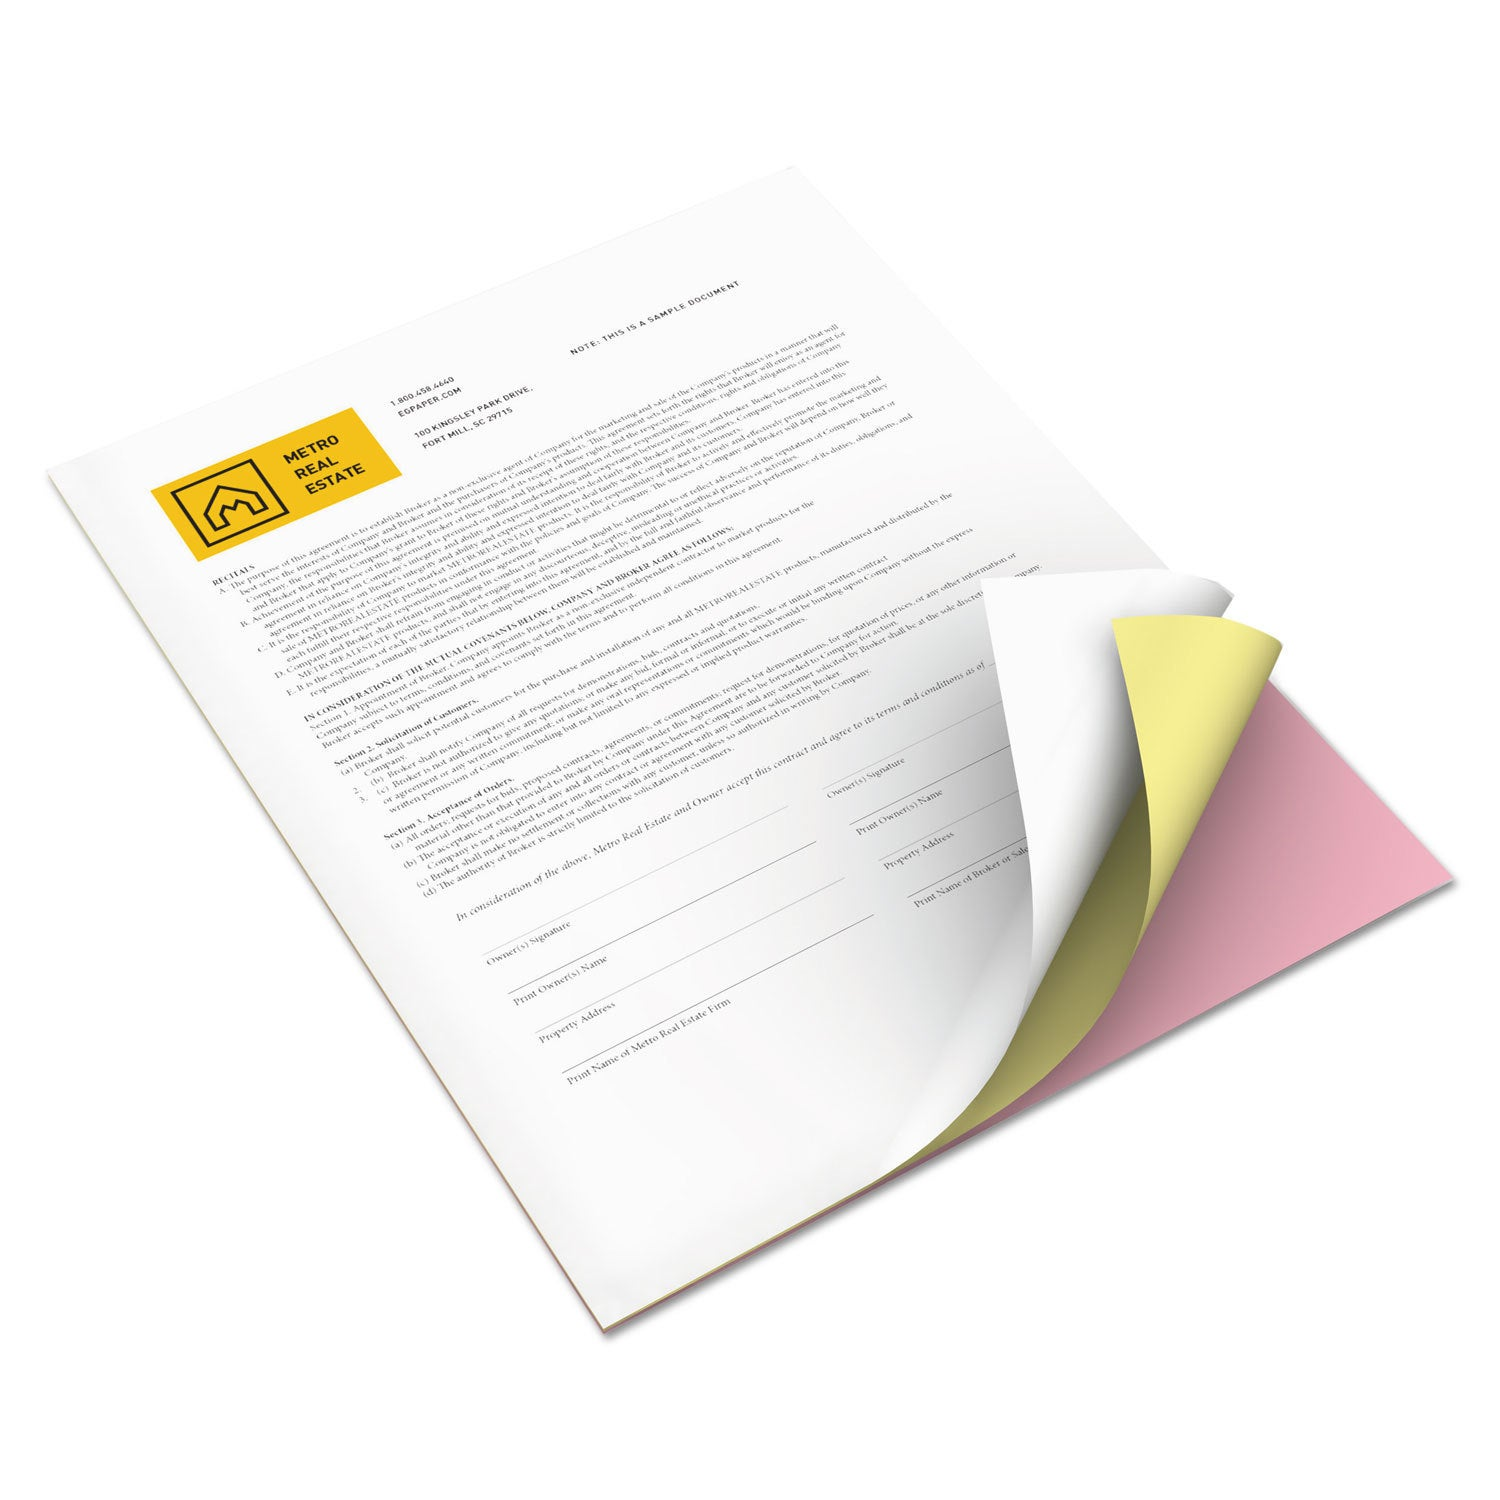 Xerox Bold Digital Carbonless Paper 8 1/2 x 11 Pink/Canar...